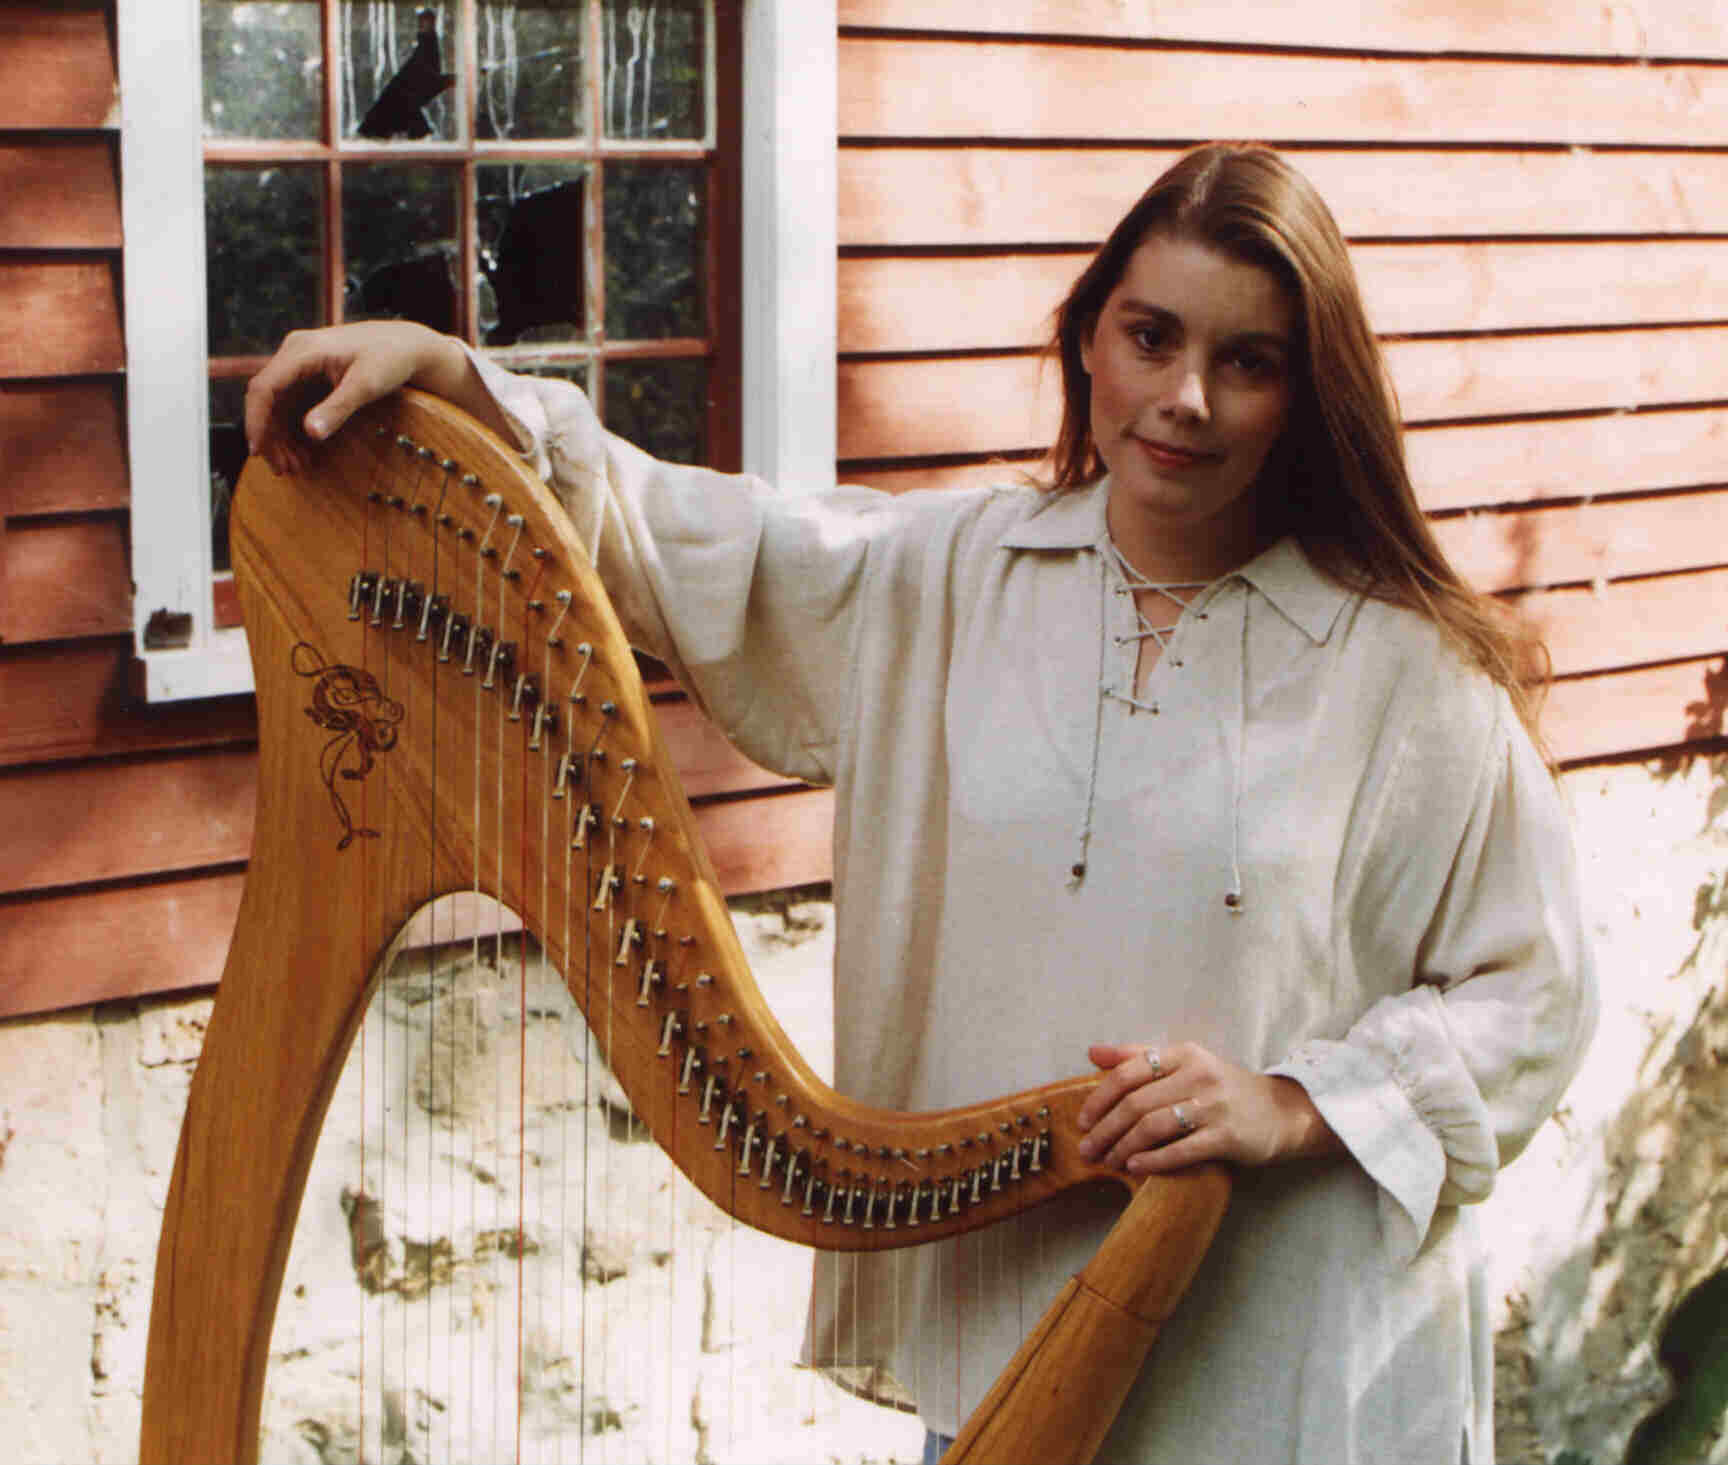 Jennifer and her harp, in front a window of the old mill in Otterville, Ontario, Canada